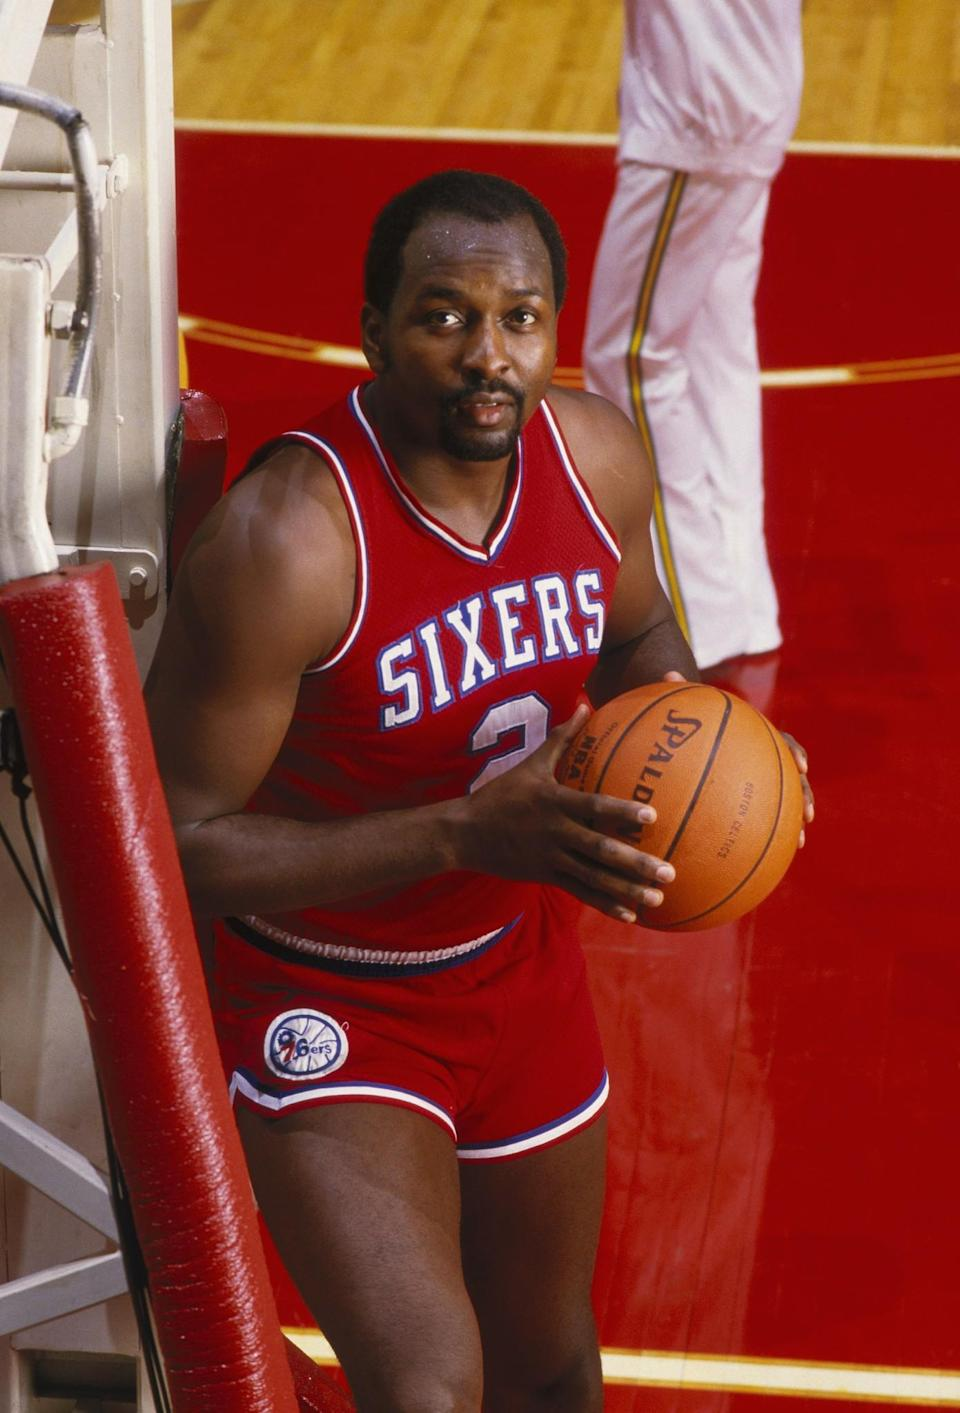 <p>Moses Malone was the first modern-era player to make the jump straight from high school to the ABA, where he was drafted by the Utah Stars in 1974. Before making that decision Malone had signed a letter of intent to attend Maryland. </p>